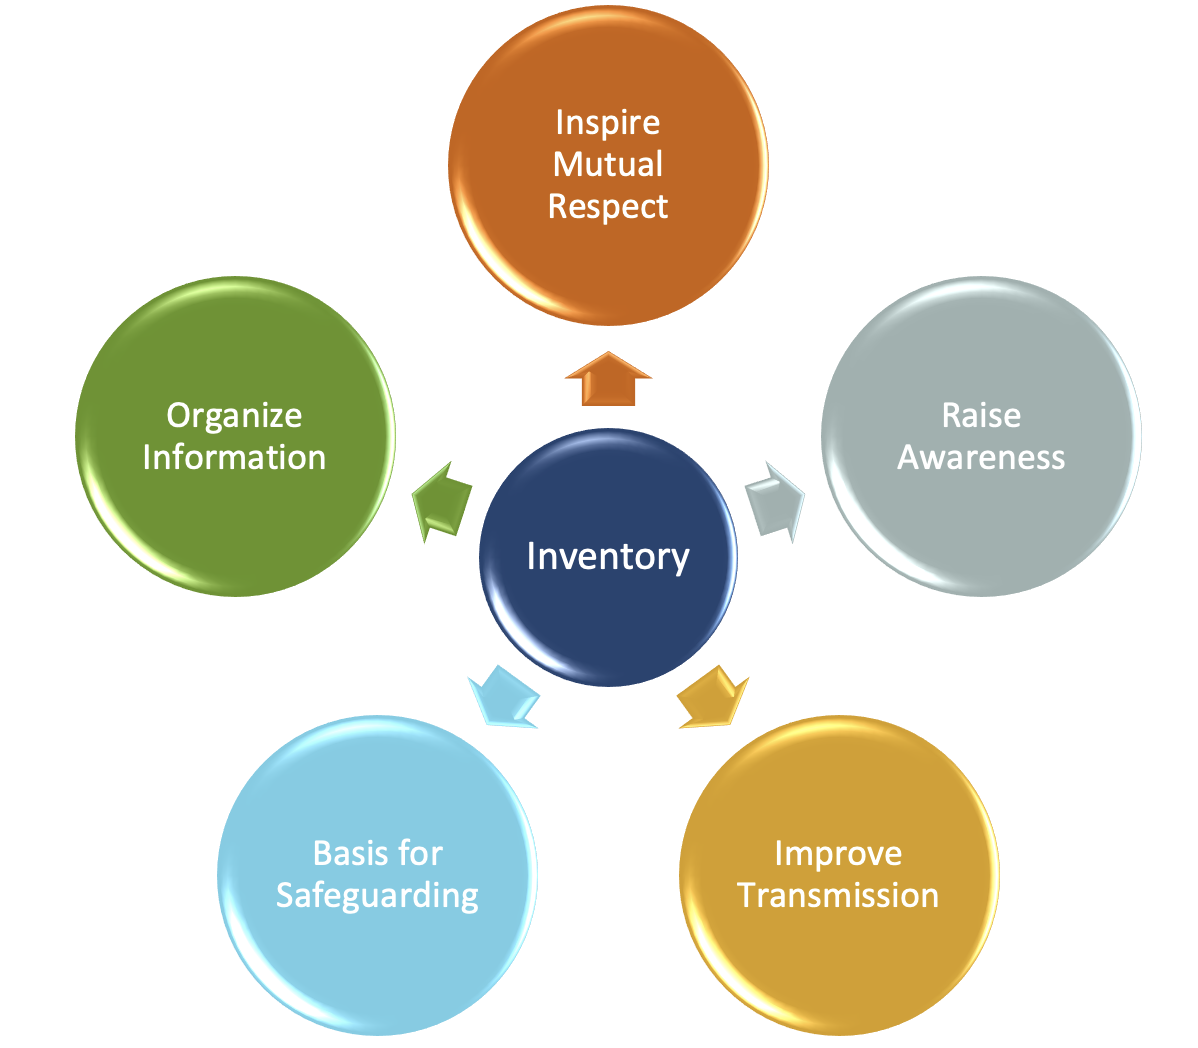 image indicating benefits related to ICH inventorying